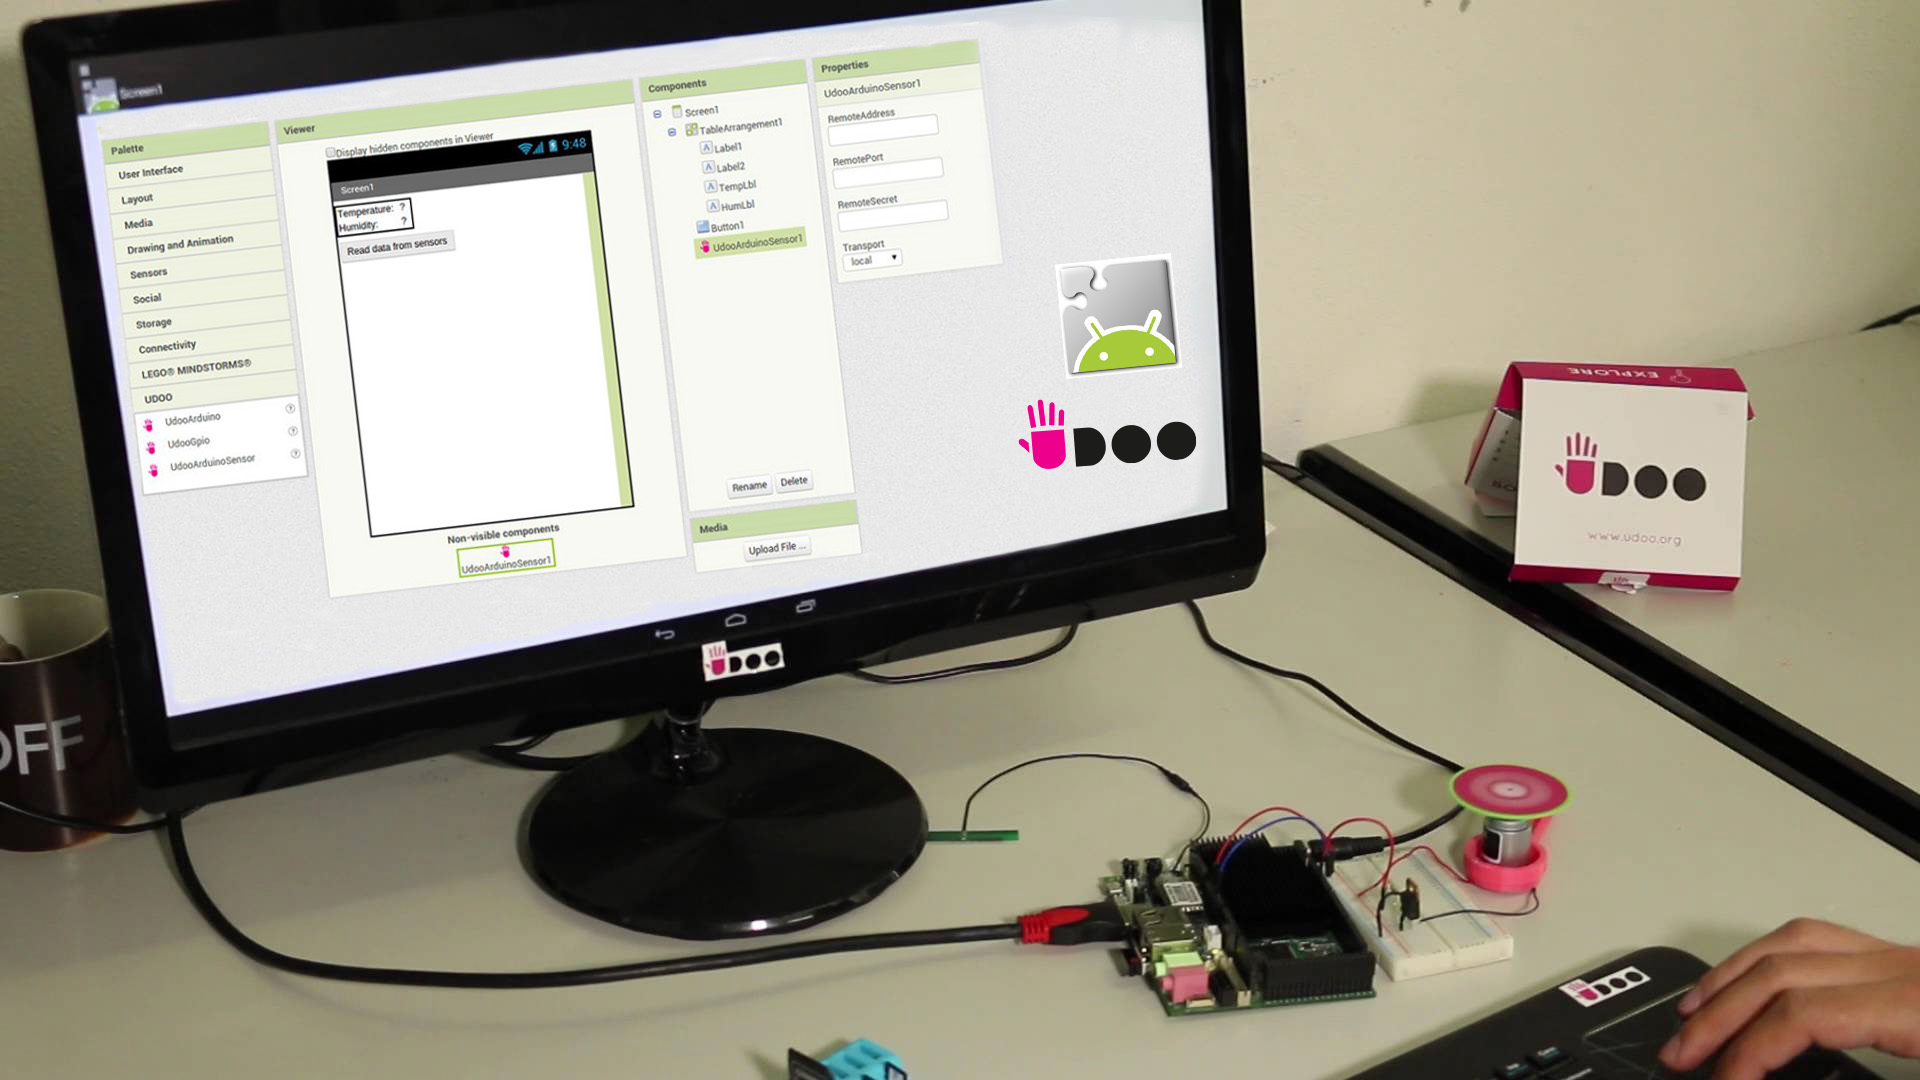 Developing  physical computing solution  with UDOO and Android App Inventor in few minutes